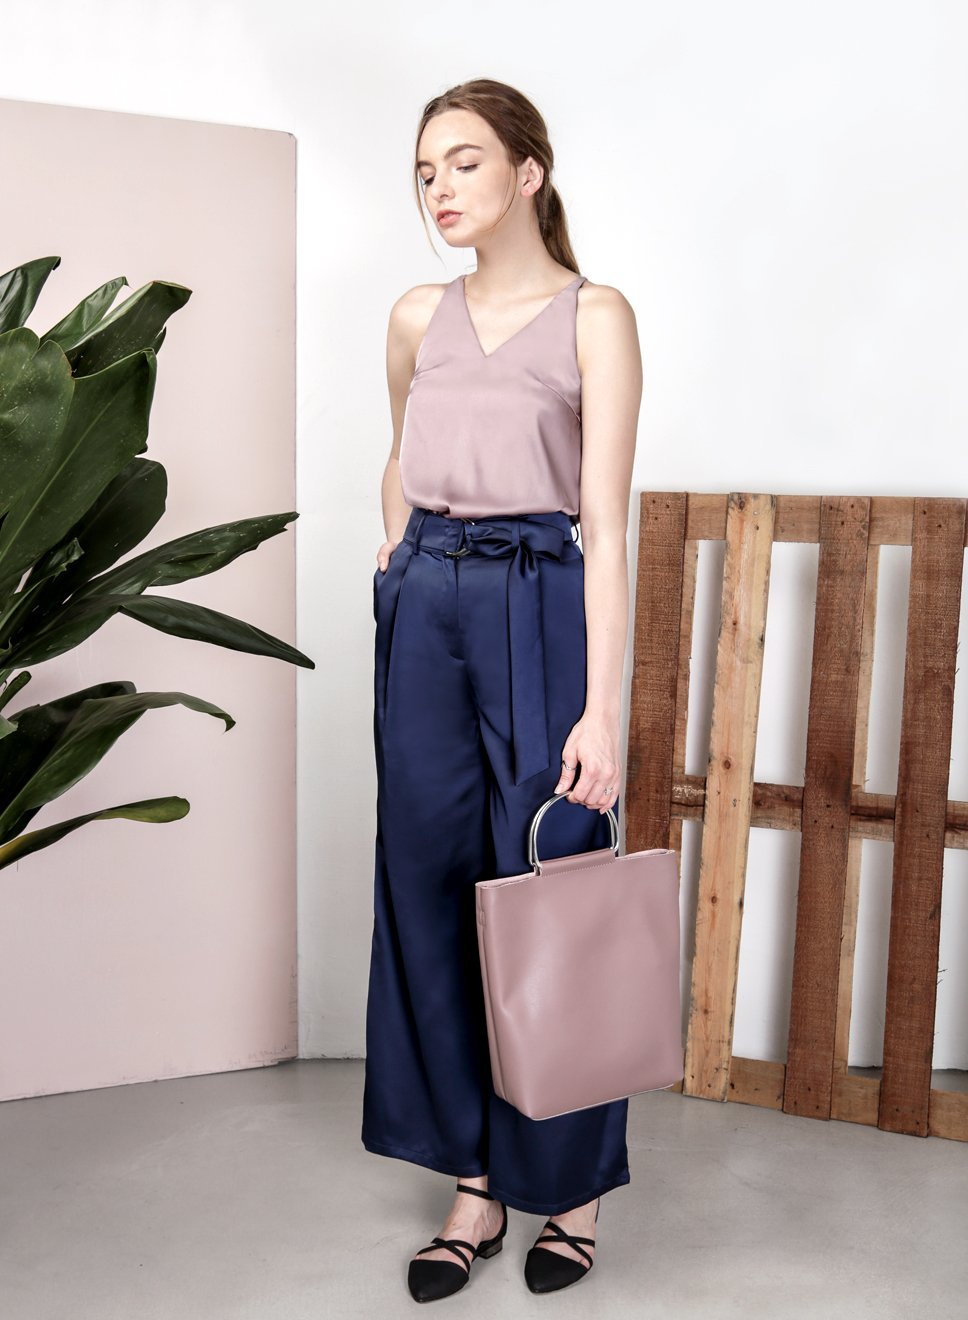 STARDUST Satin Flared Pants (Navy) at $ 22.50 only sold at And Well Dressed Online Fashion Store Singapore